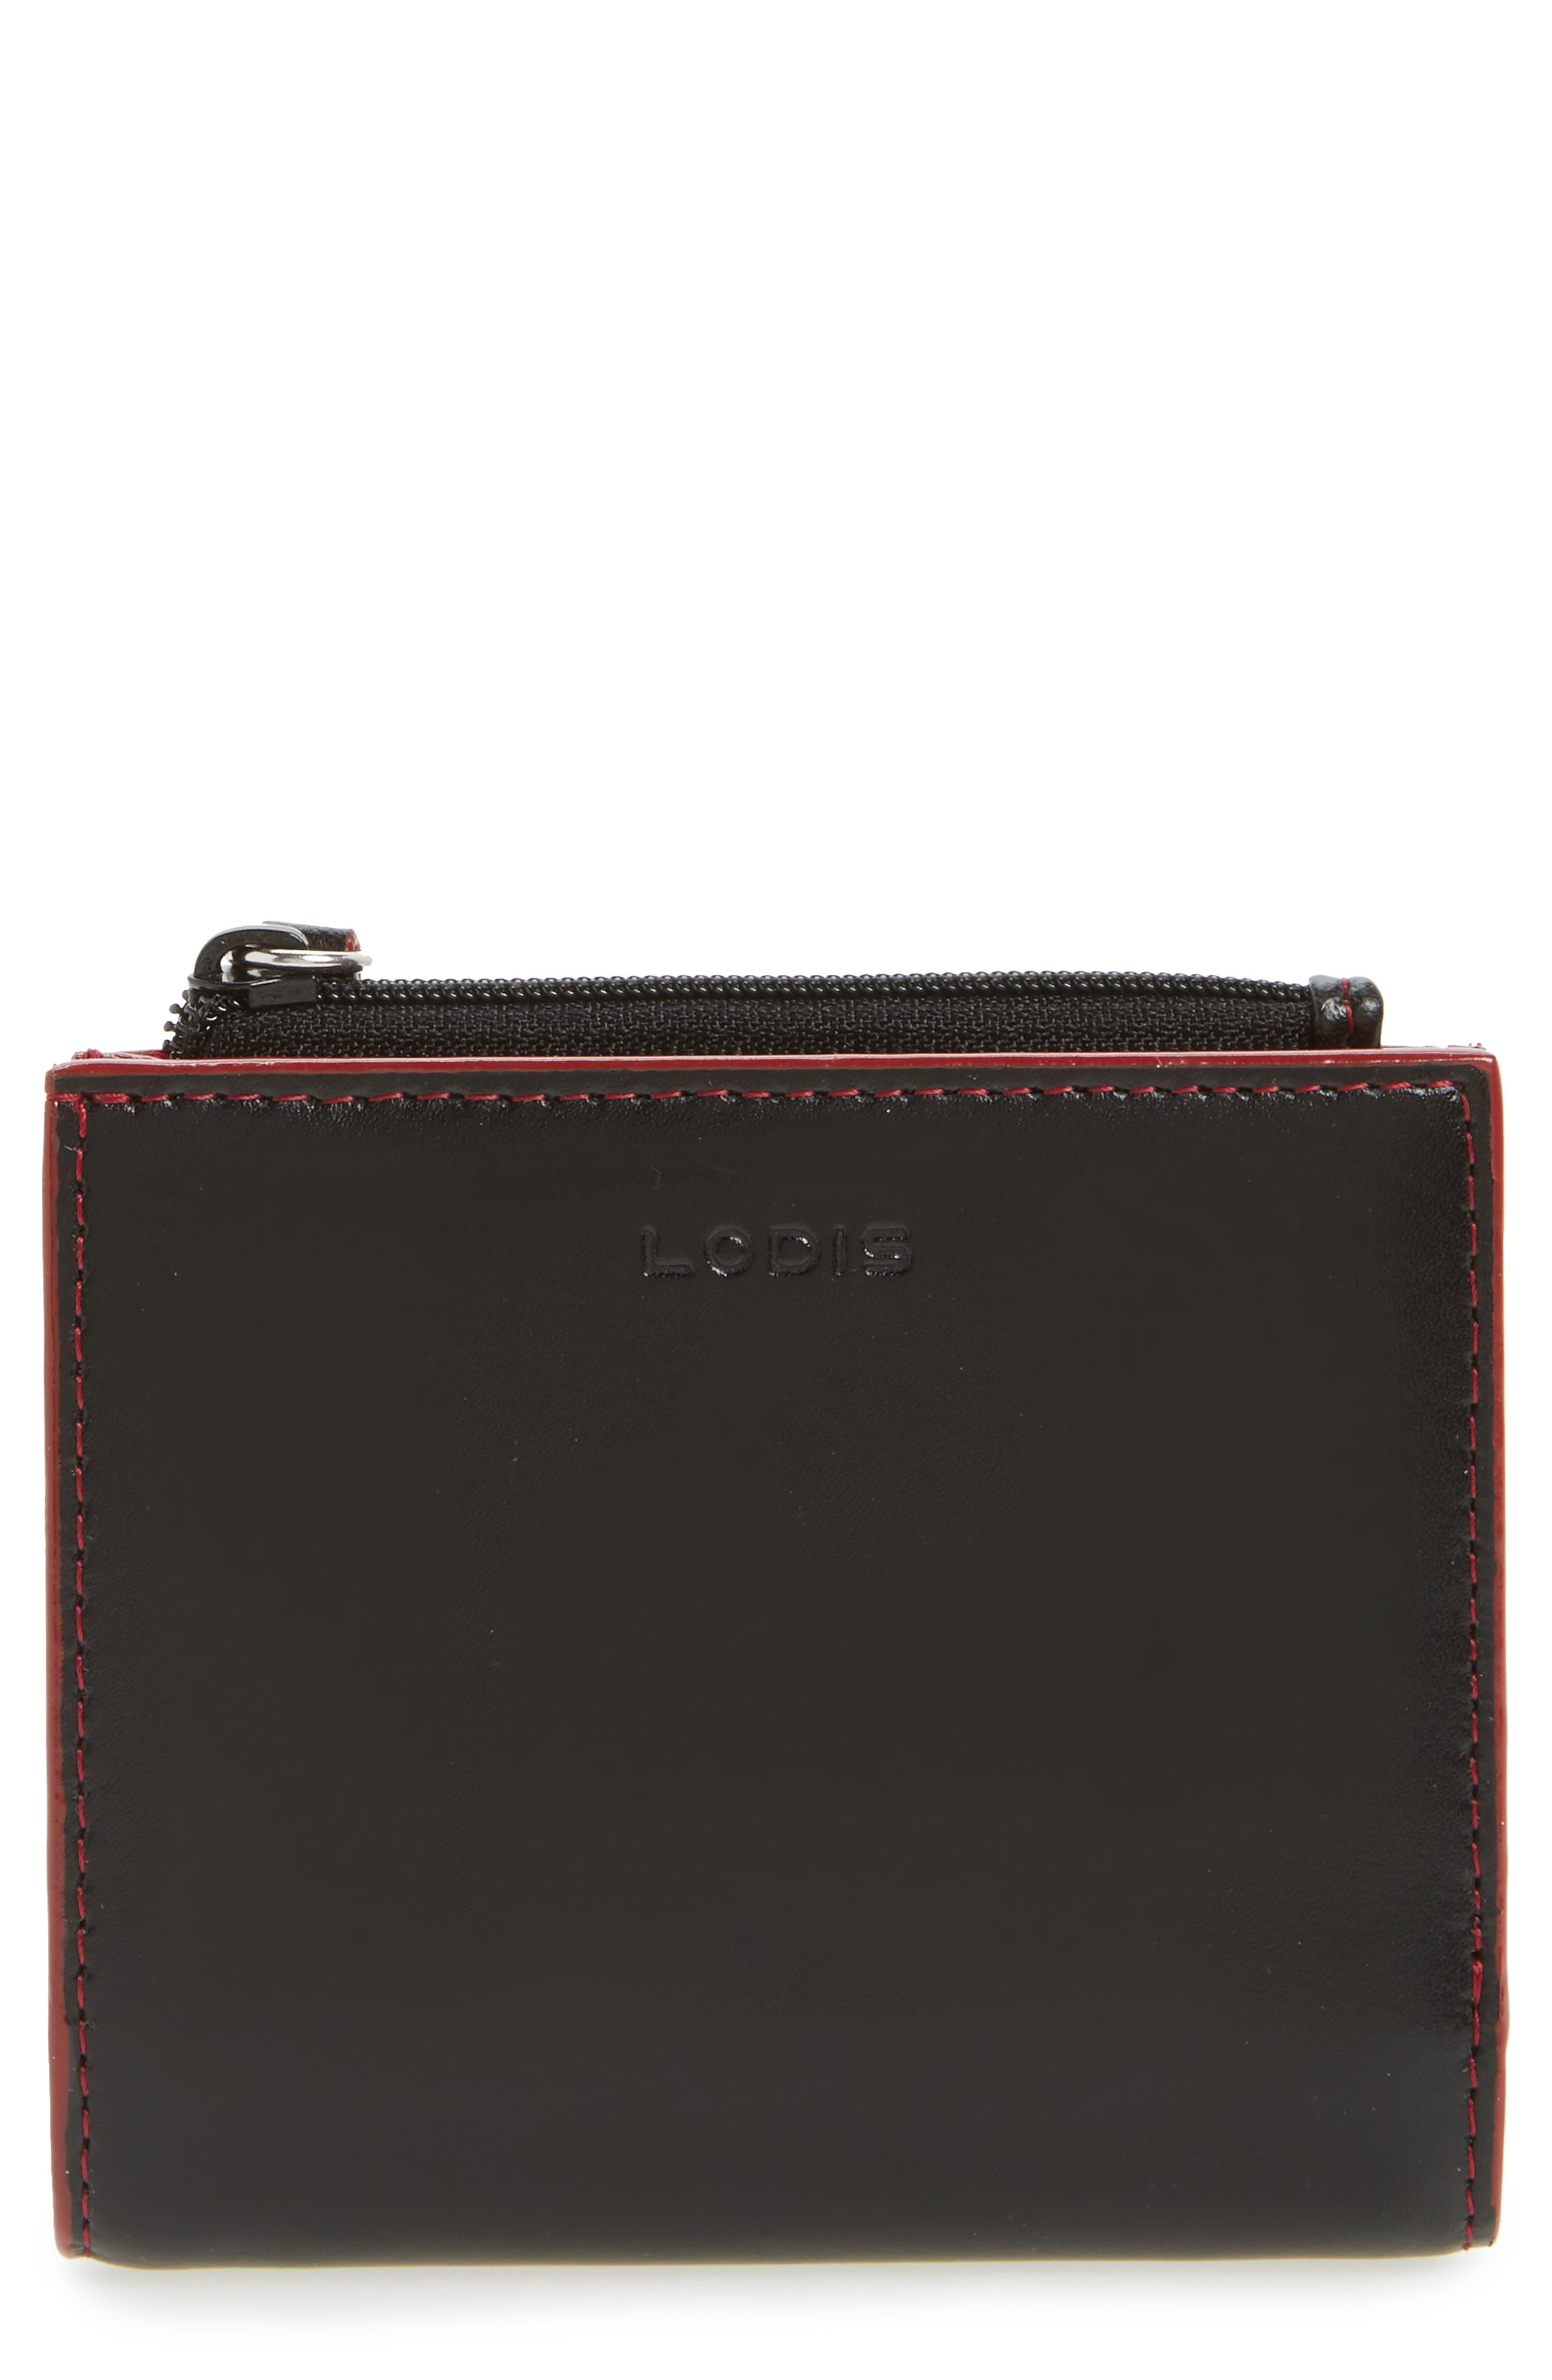 Audrey Under Lock & Key Aldis Leather Wallet,                         Main,                         color,